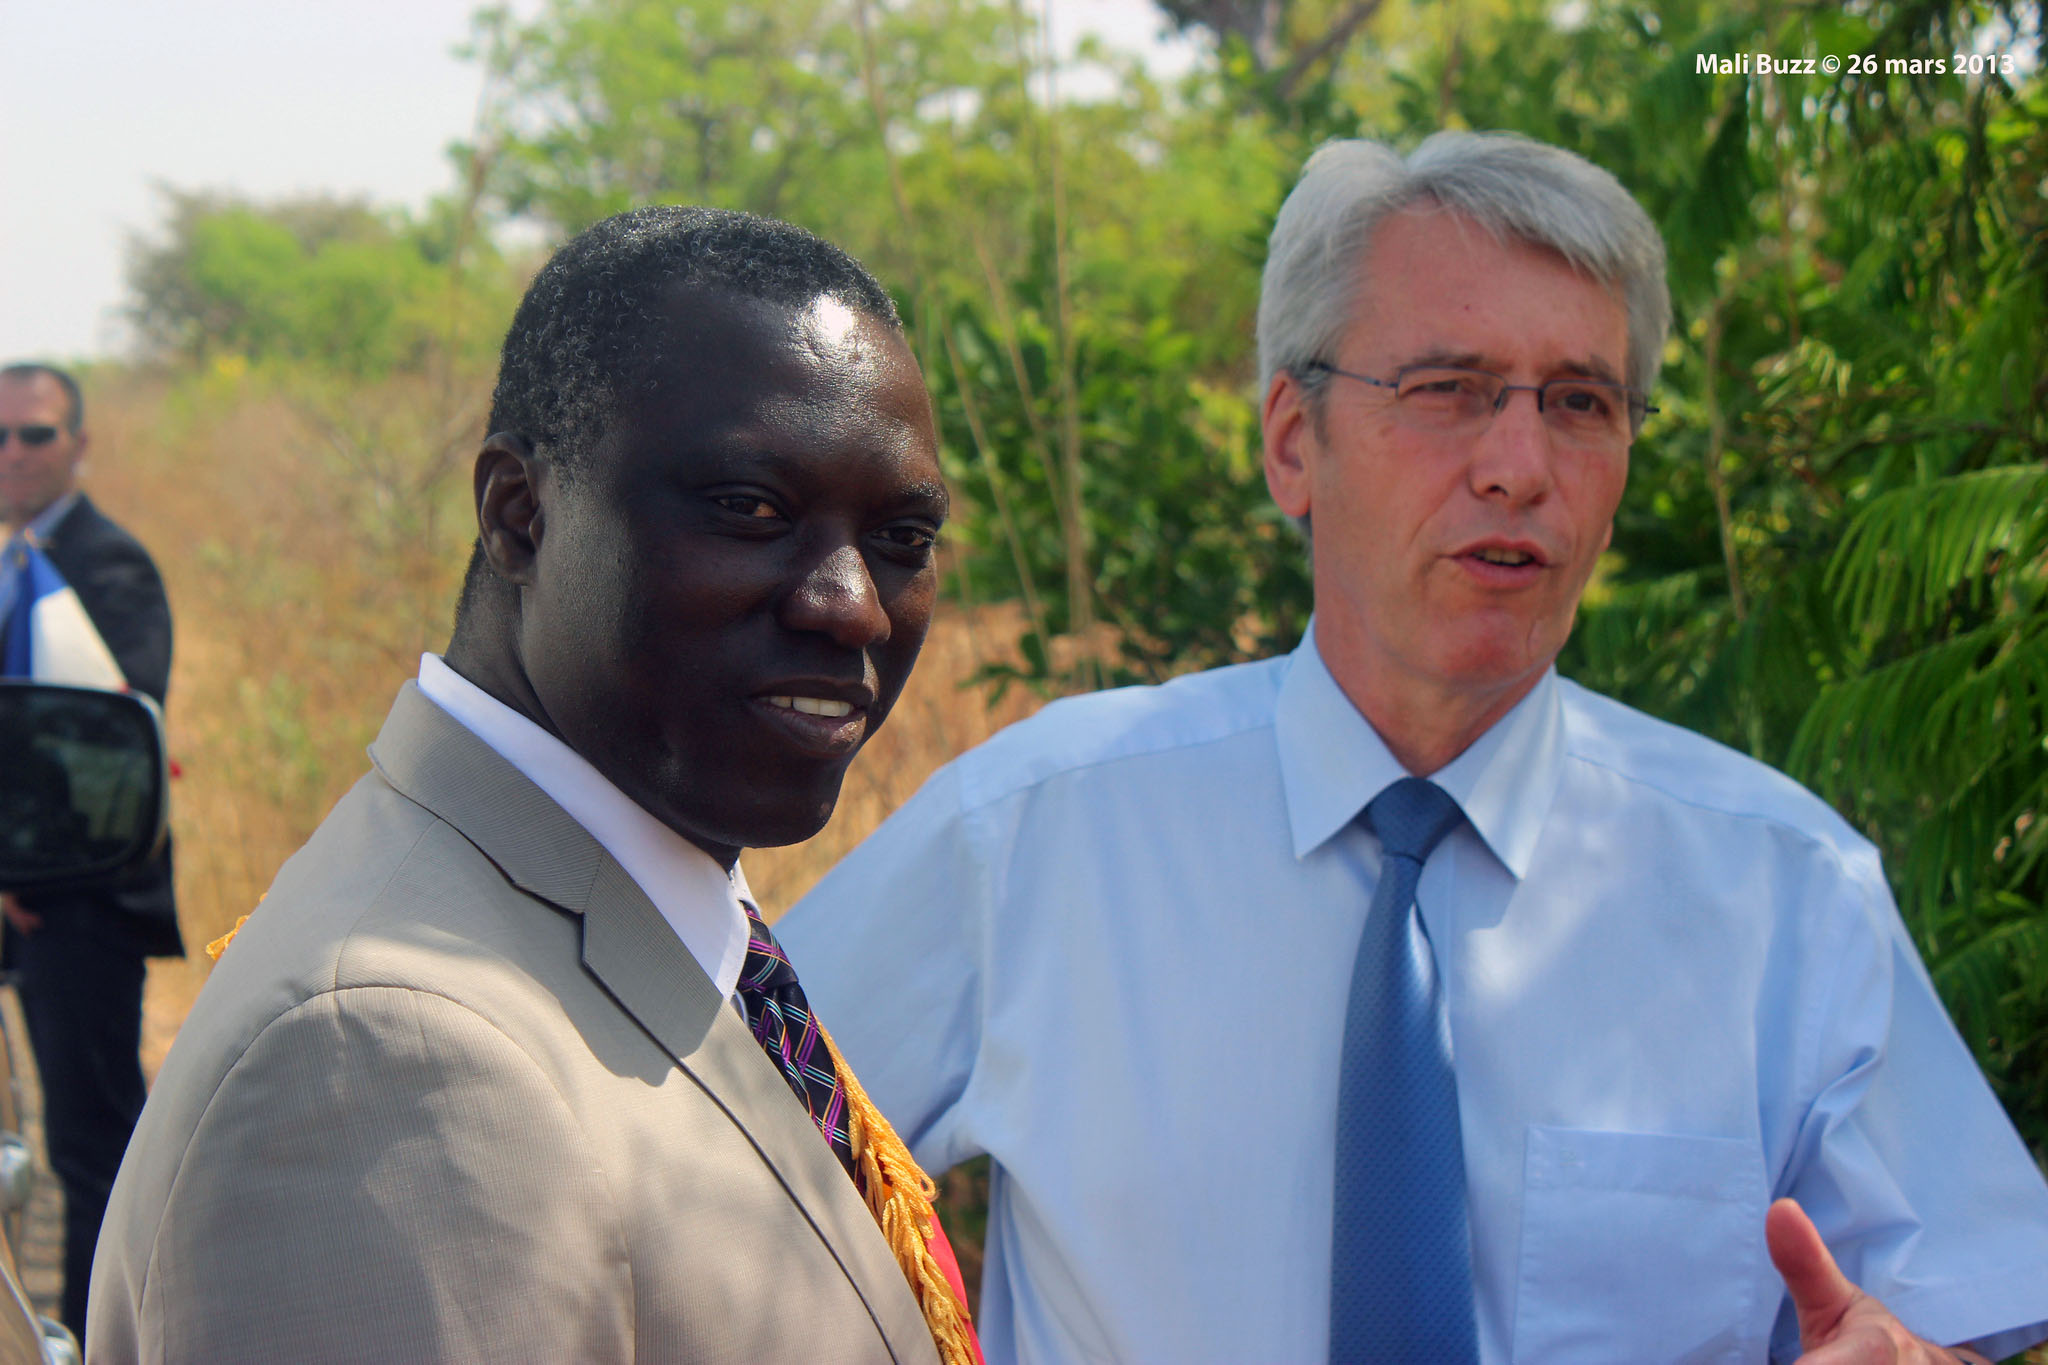 Niankoro Yeah Samaké hopes to be elected the first Mormon president of Mali